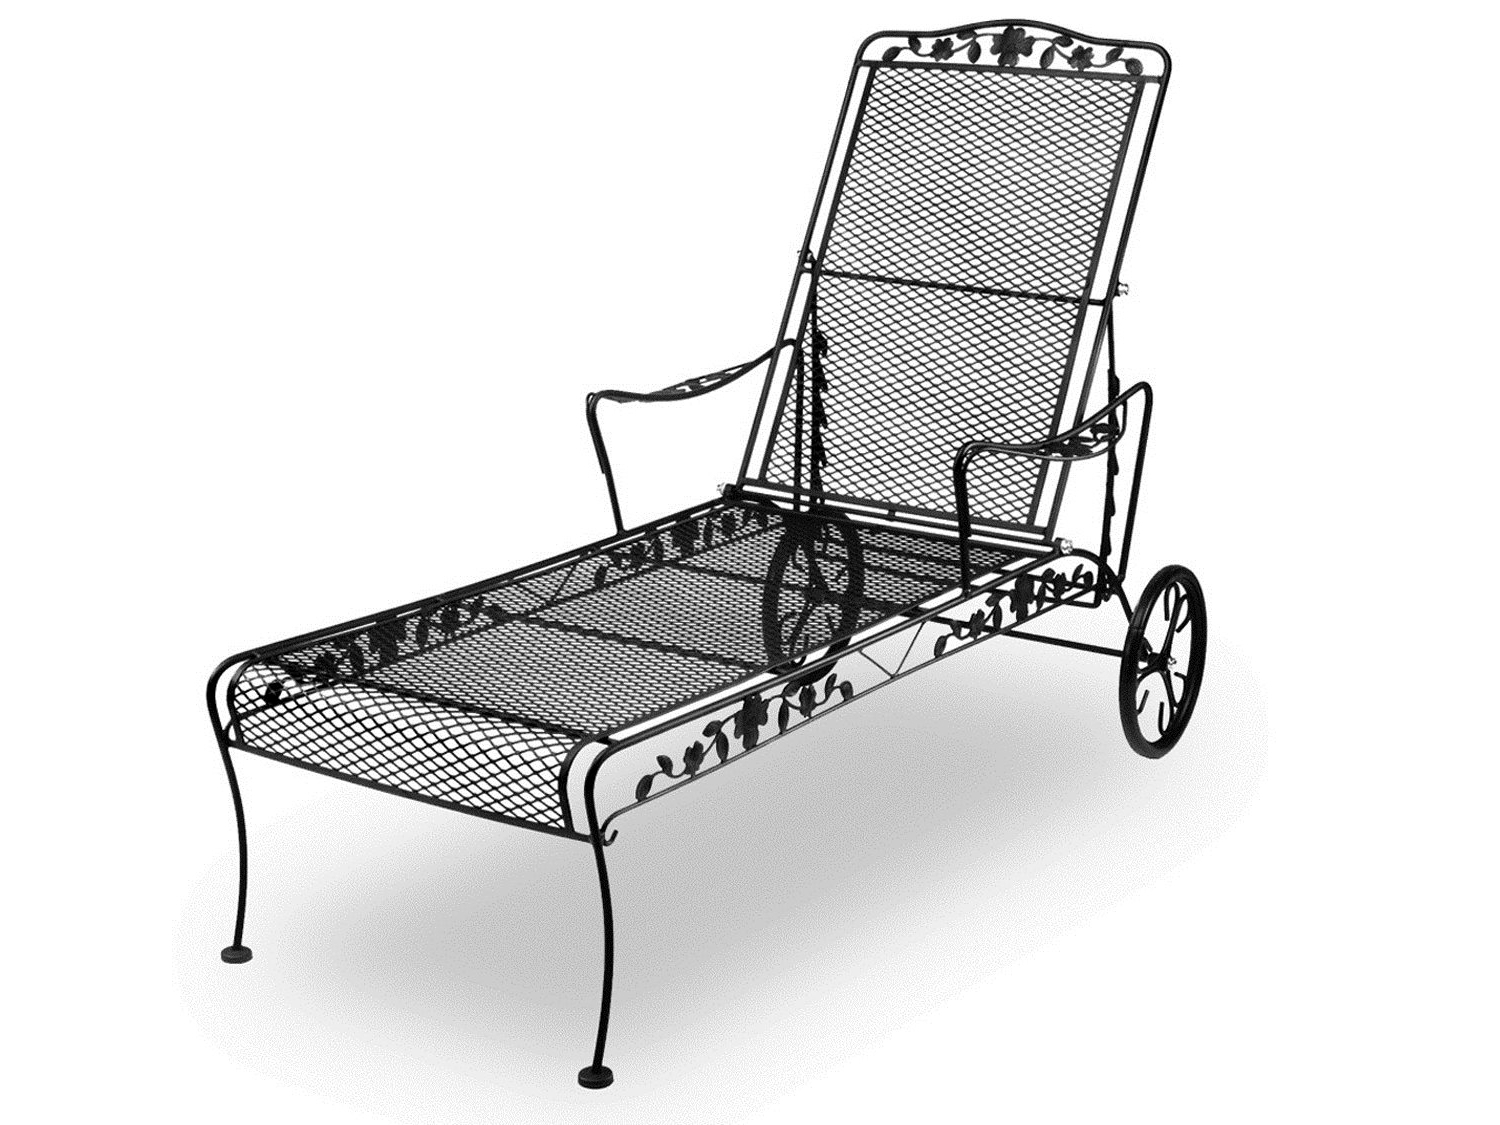 Wrought Iron Chaise Lounge Chairs • Lounge Chairs Ideas Pertaining To Preferred Wrought Iron Outdoor Chaise Lounge Chairs (View 5 of 15)